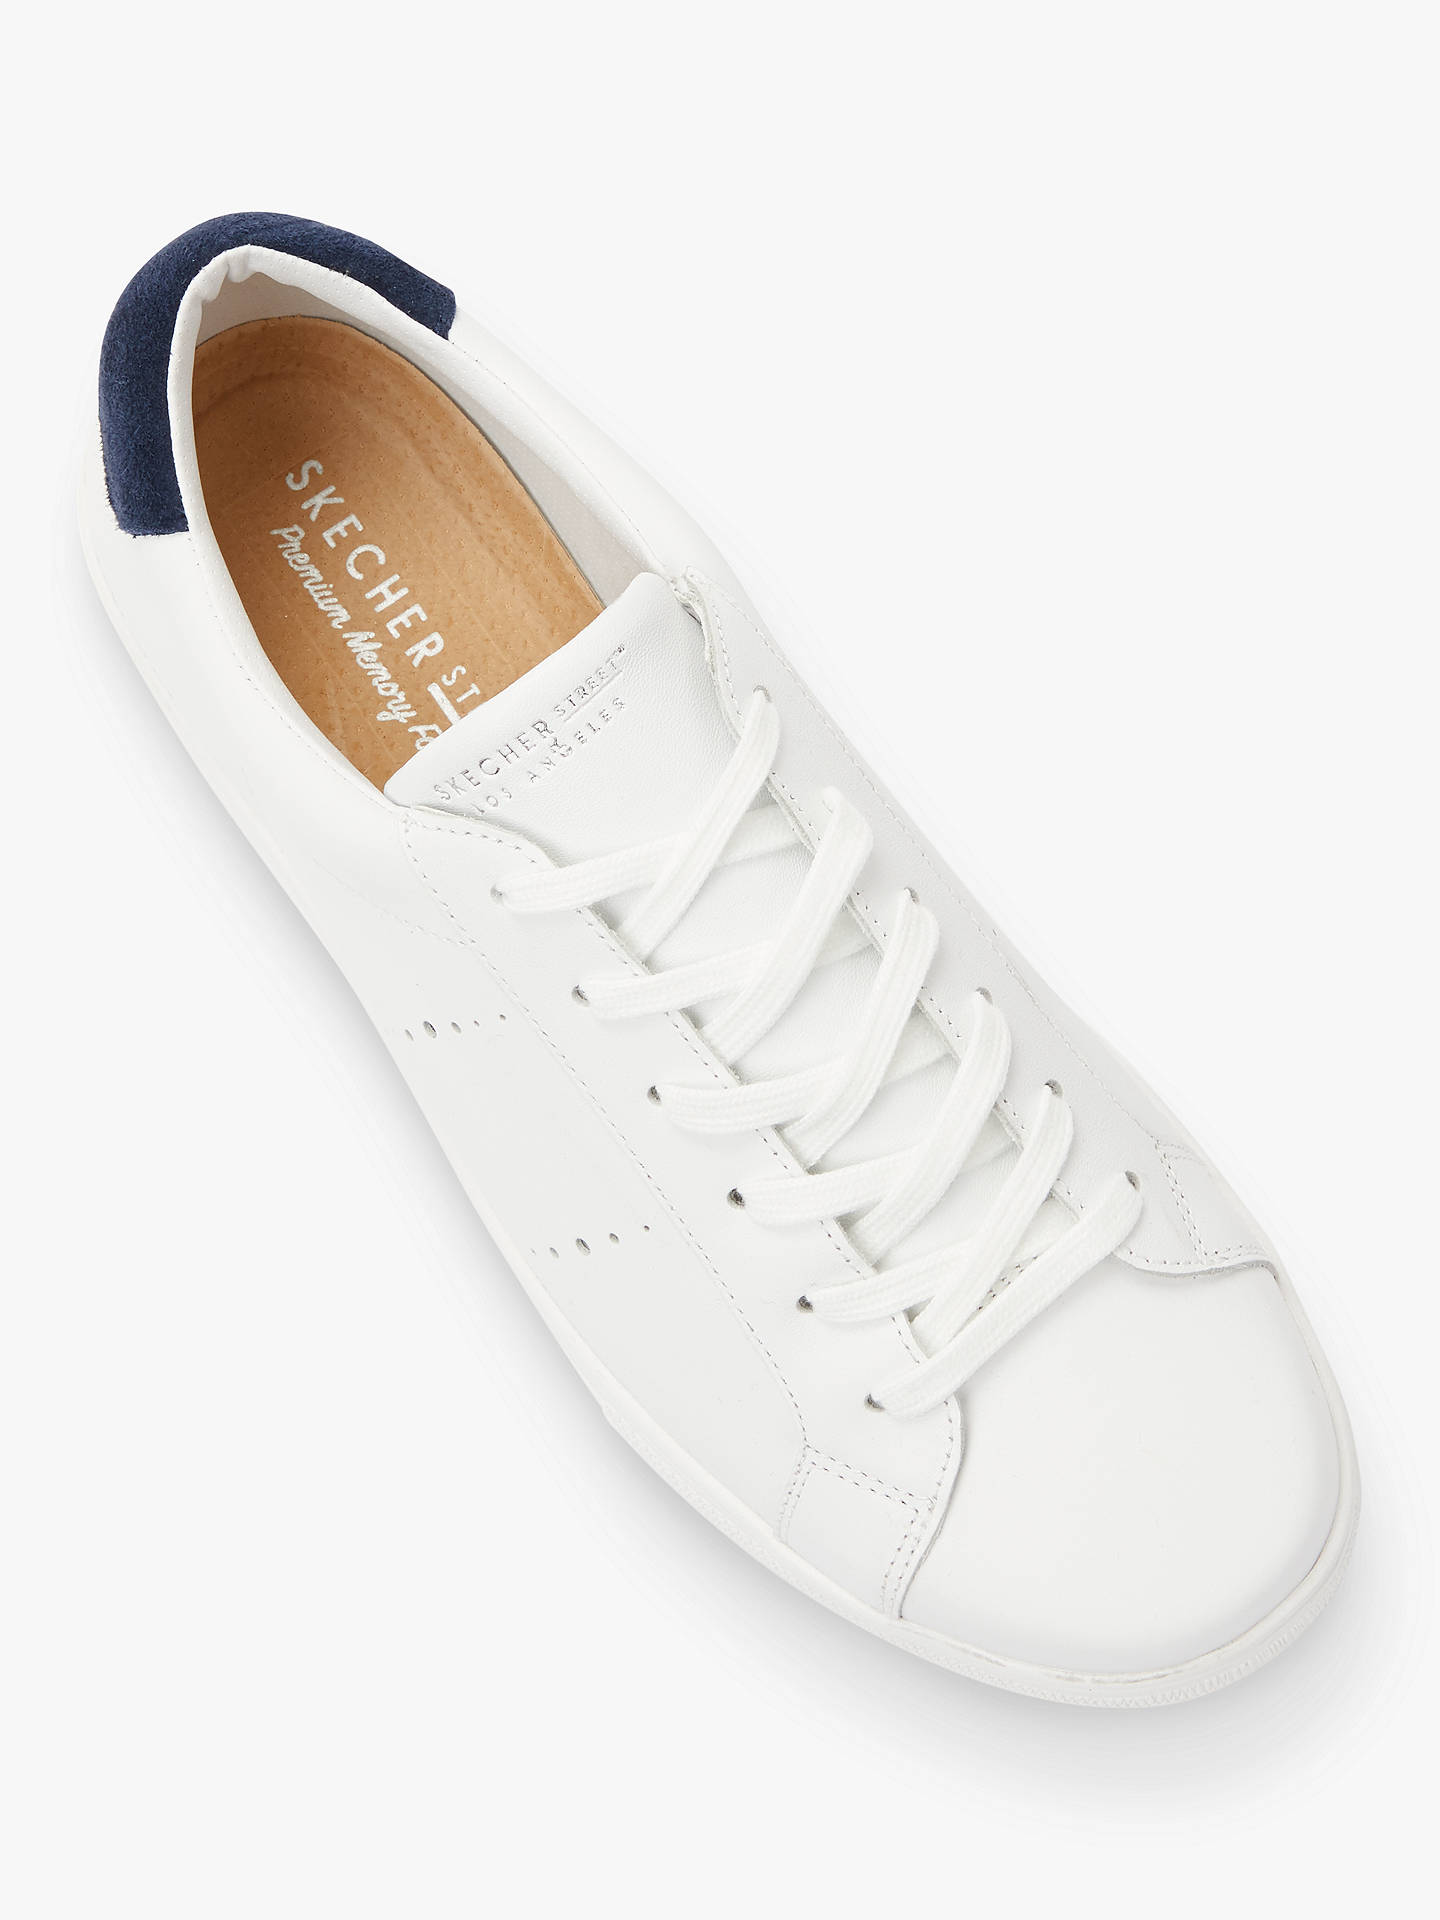 Buy Skechers Moda Walk Street Lace Up Trainers, White Leather, 7 Online at johnlewis.com